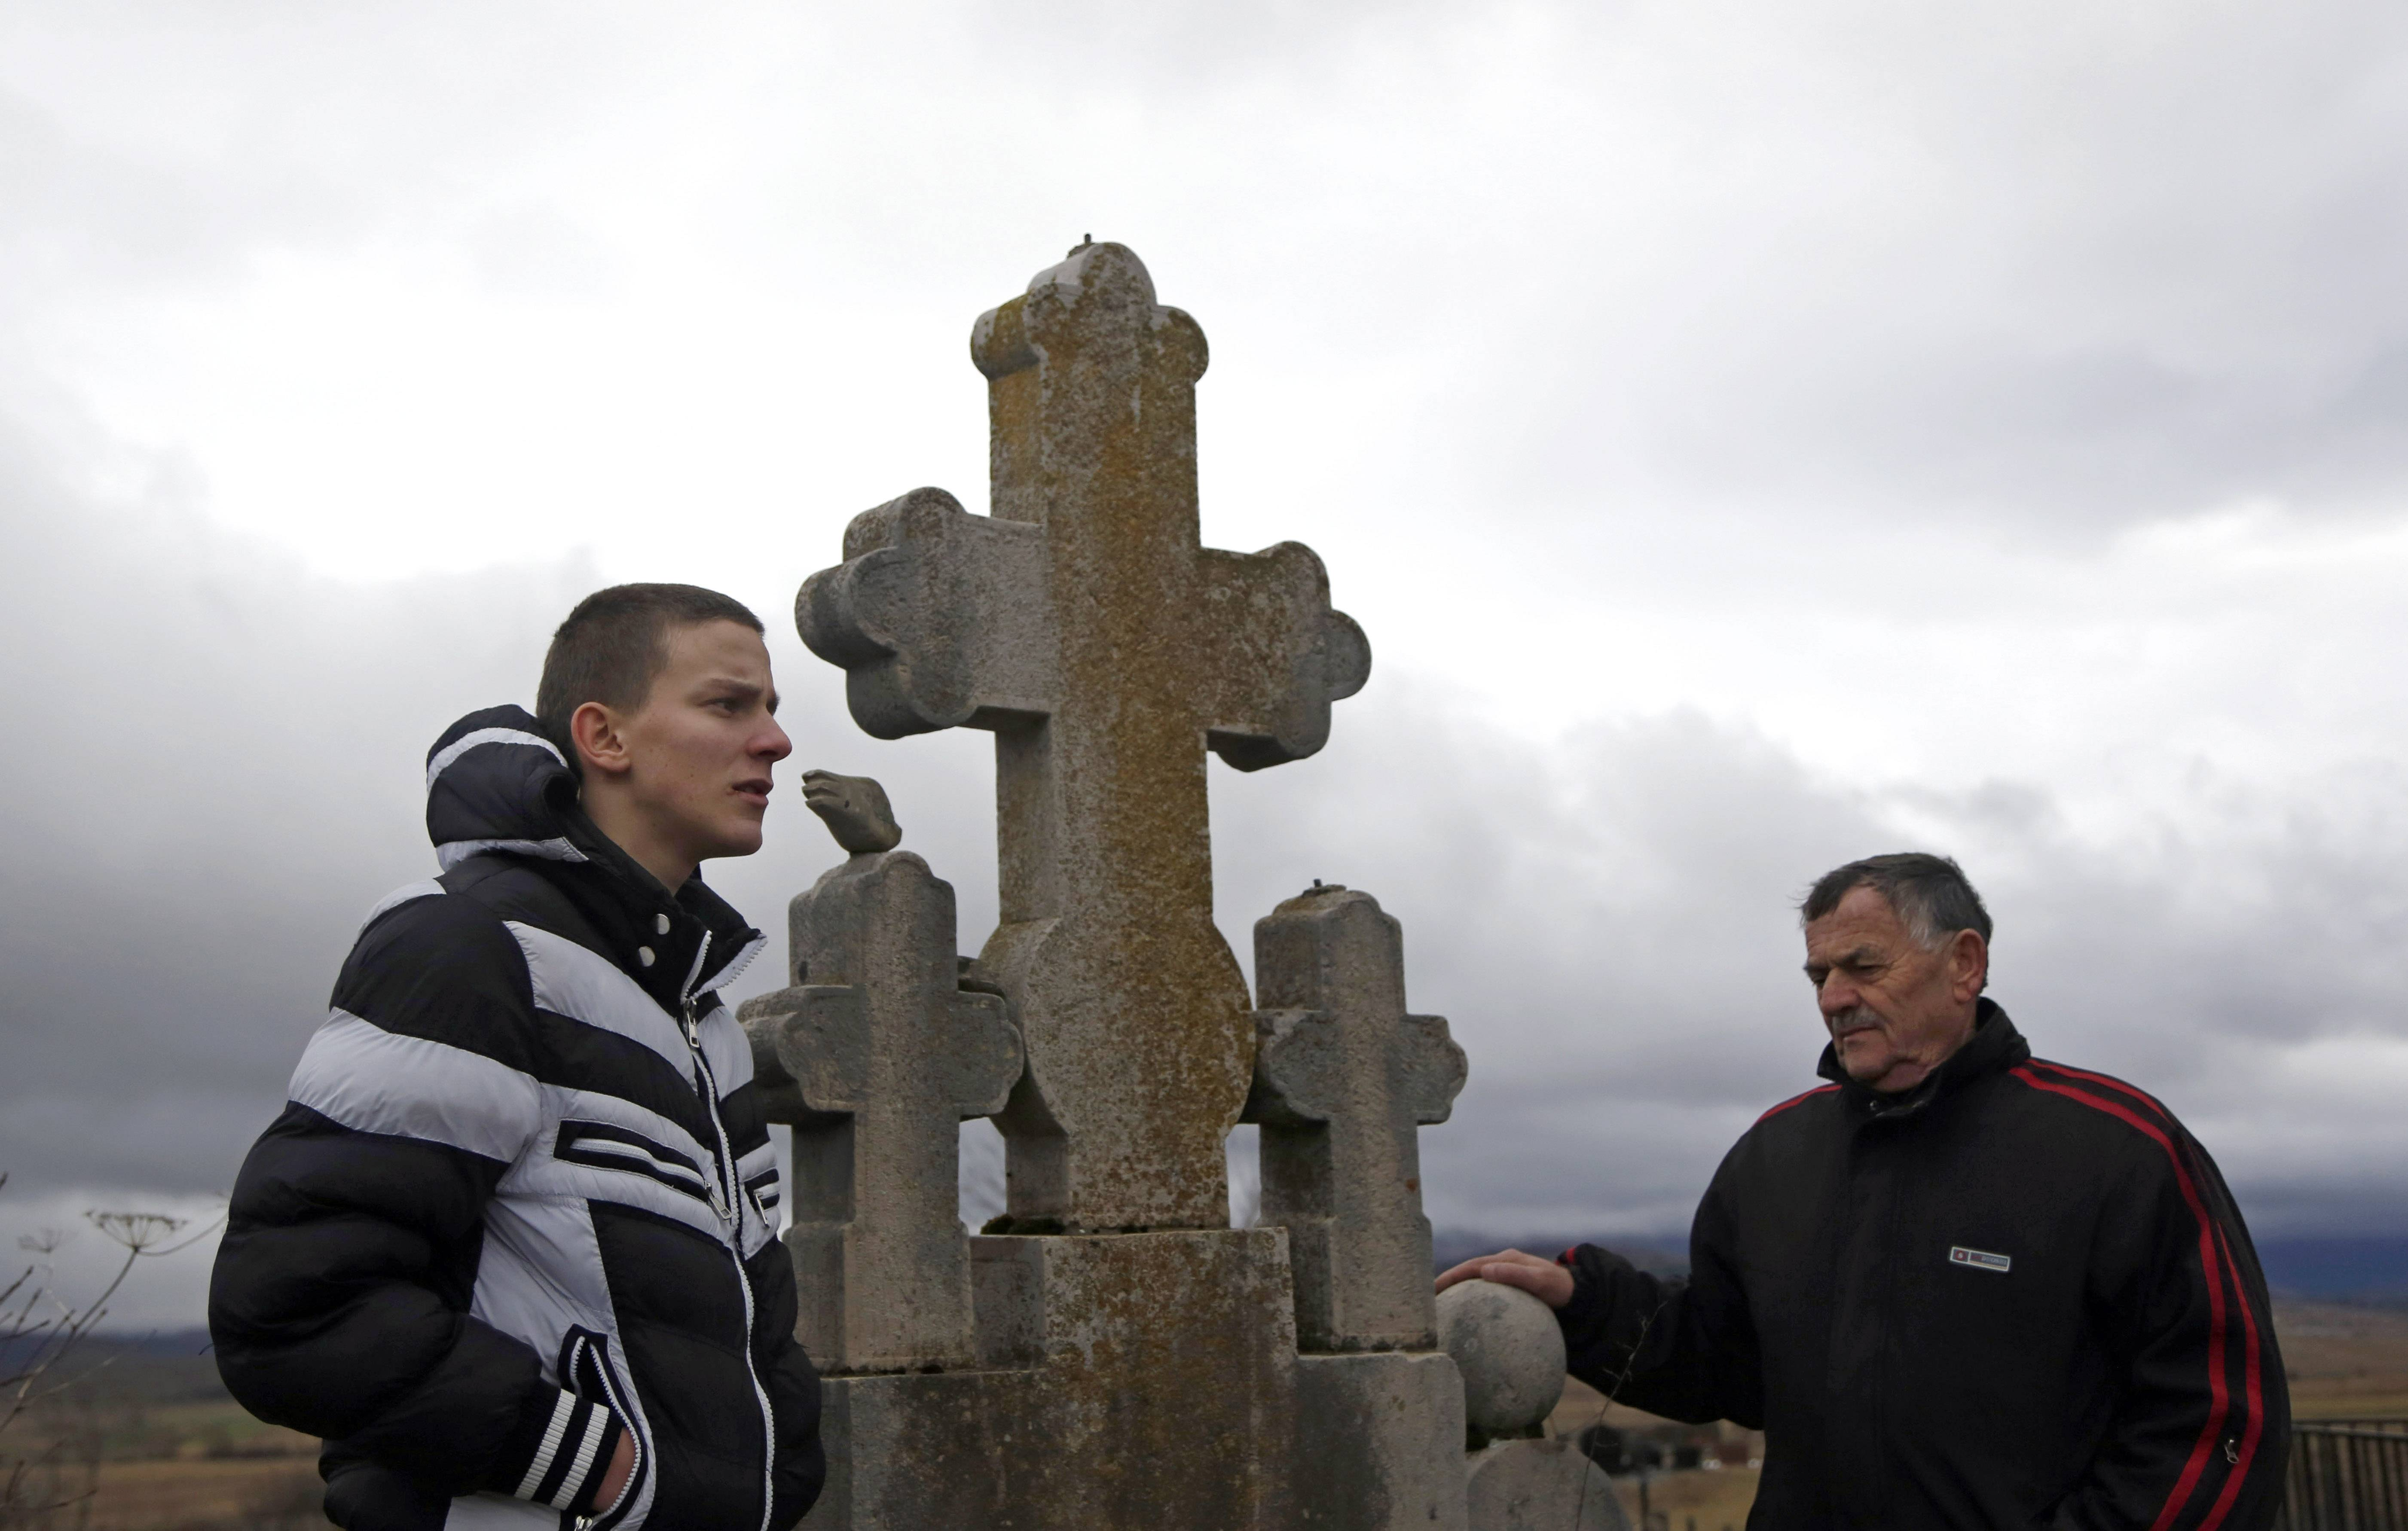 Gavrilo Princip's relatives, Nikola Princip, right, and his grandson, Novak Princip, 16, pay their respects at the Princip family plot in a cemetery in the village of Obljaj, near Bosansko Grahovo, Bosnia. A century later, Gavrilo Princip still provokes controversy from beyond the grave as his legacy has been molded time and again to meet political agendas in the Balkans, still a patchwork of ethnic and religious rivalries.